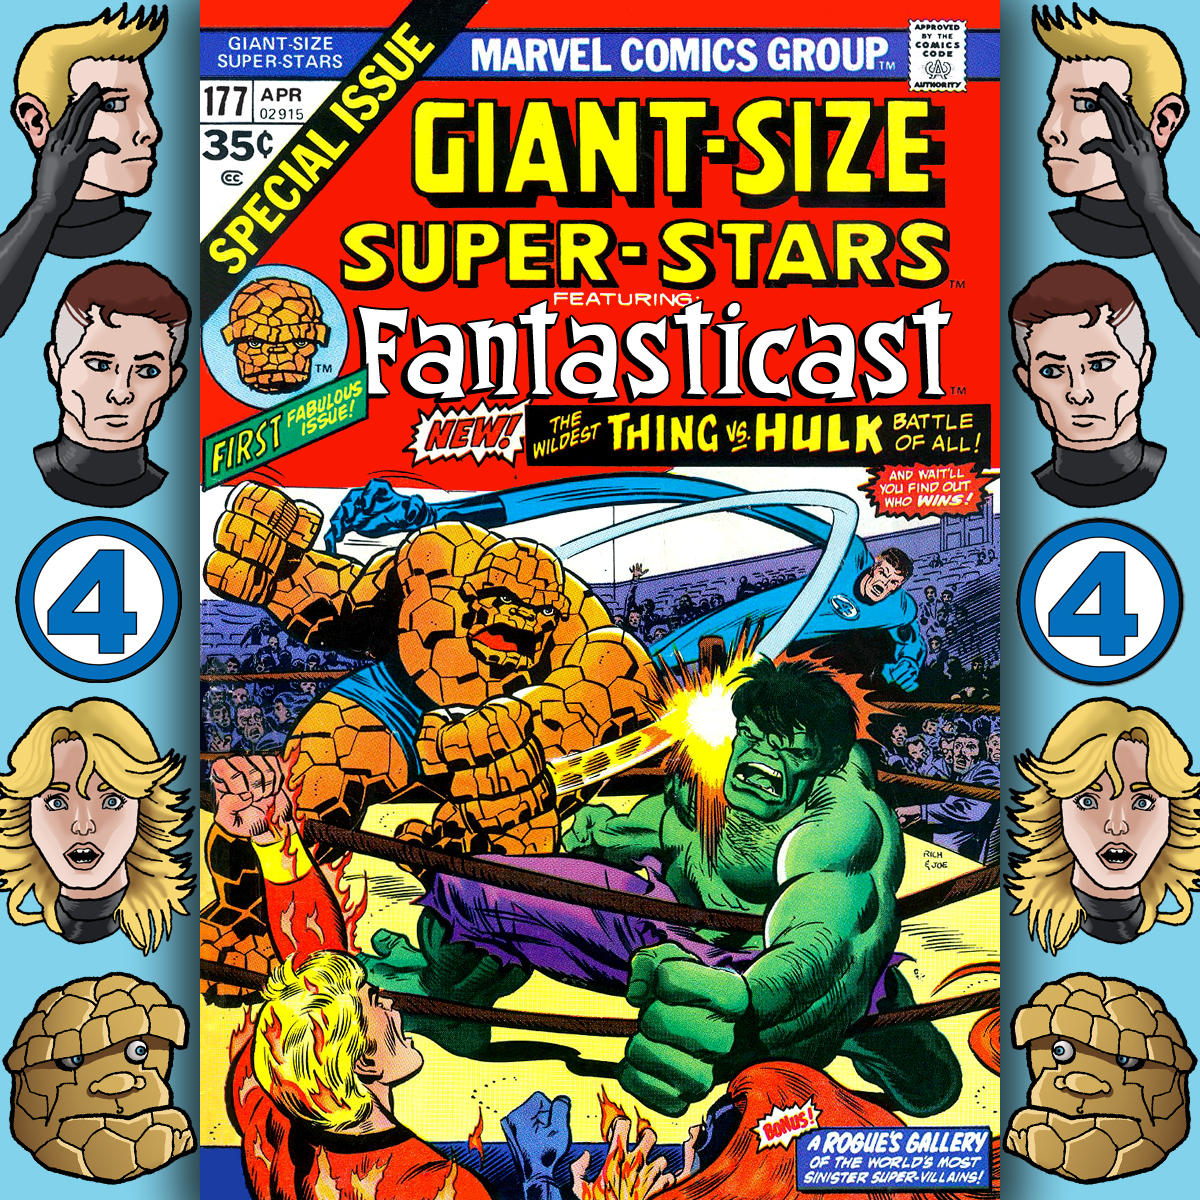 The Fantasticast Episode 177